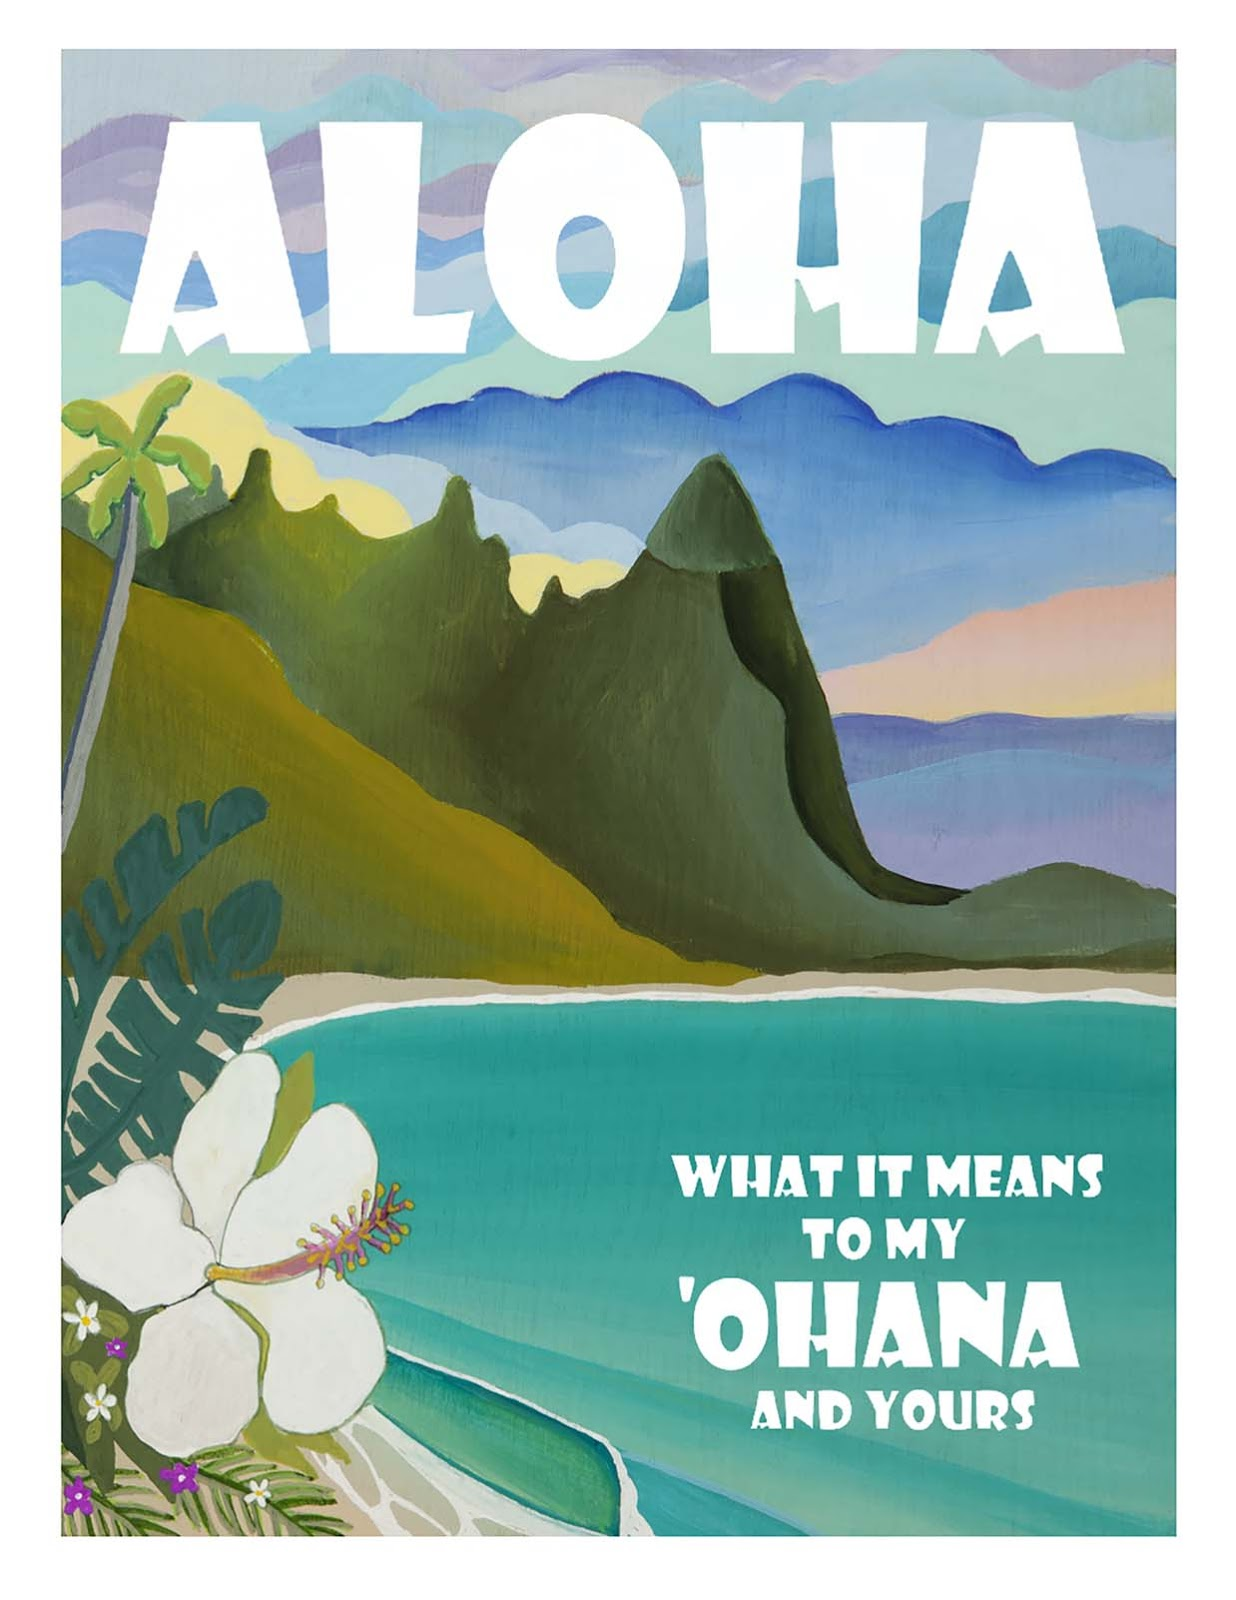 Hawaii Mom Blog Visit Tokyo Totti Candy Factory: Aloha: What It Means To My